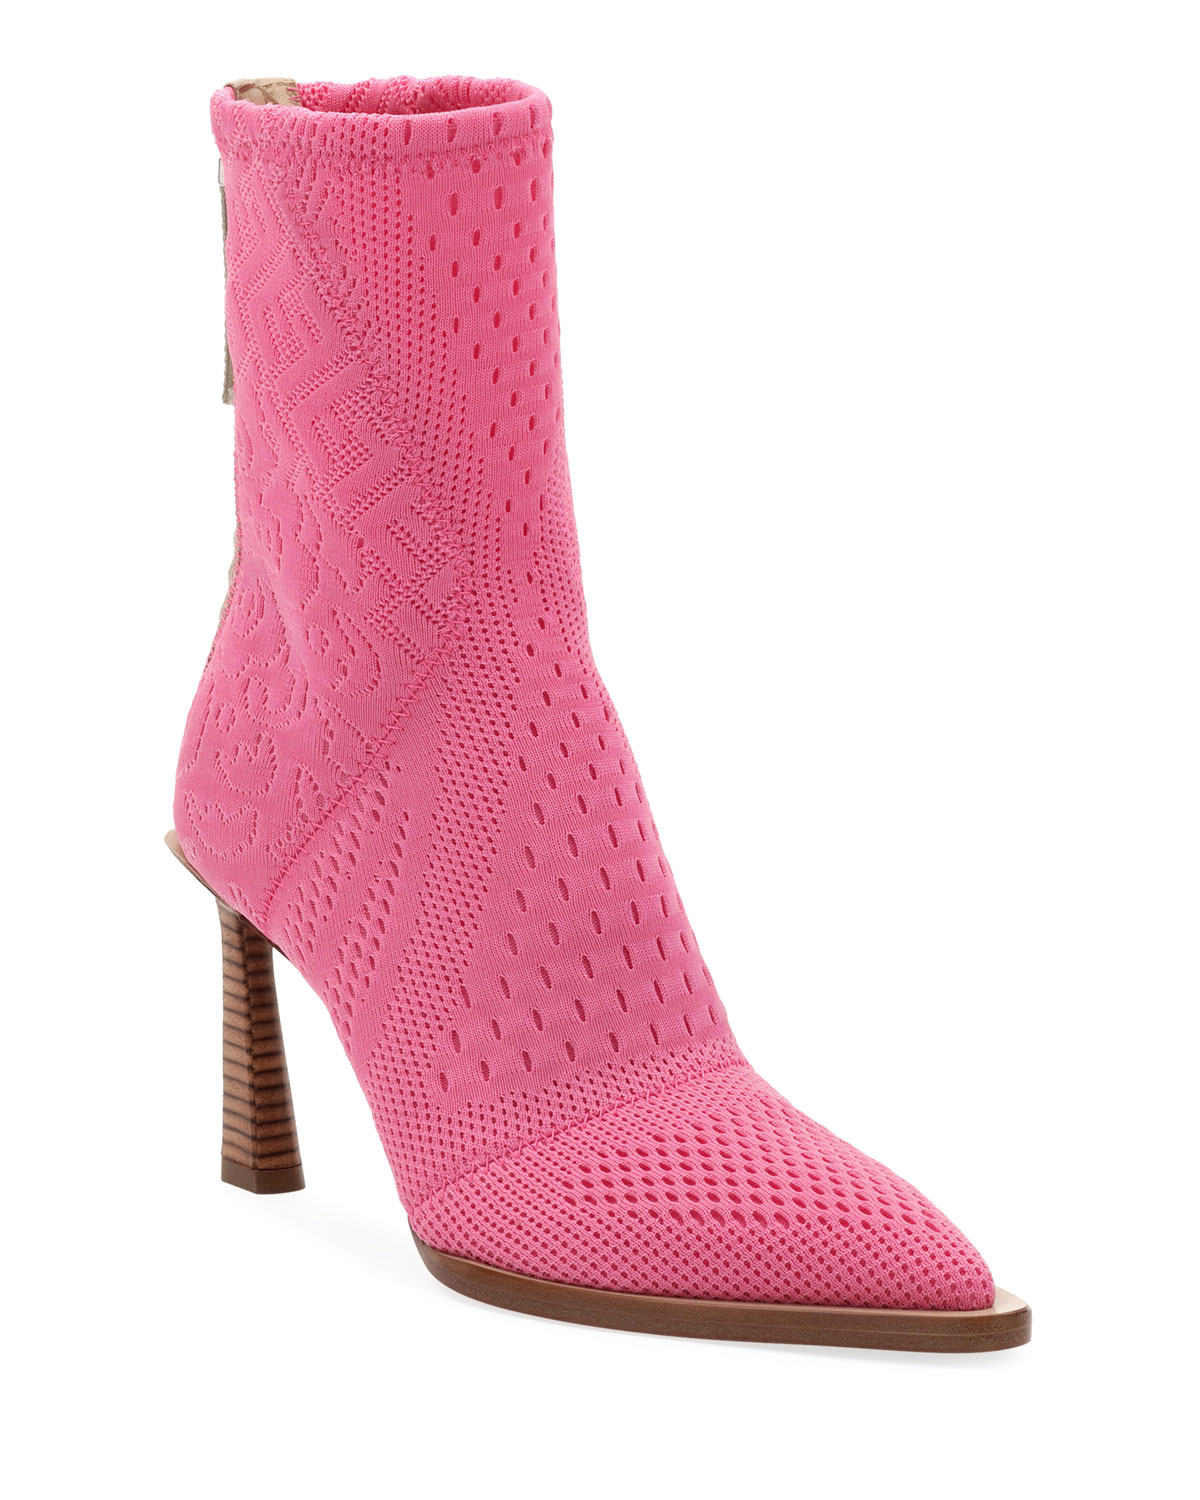 Fendi Boots STRETCH-KNIT HIGH BOOTIES